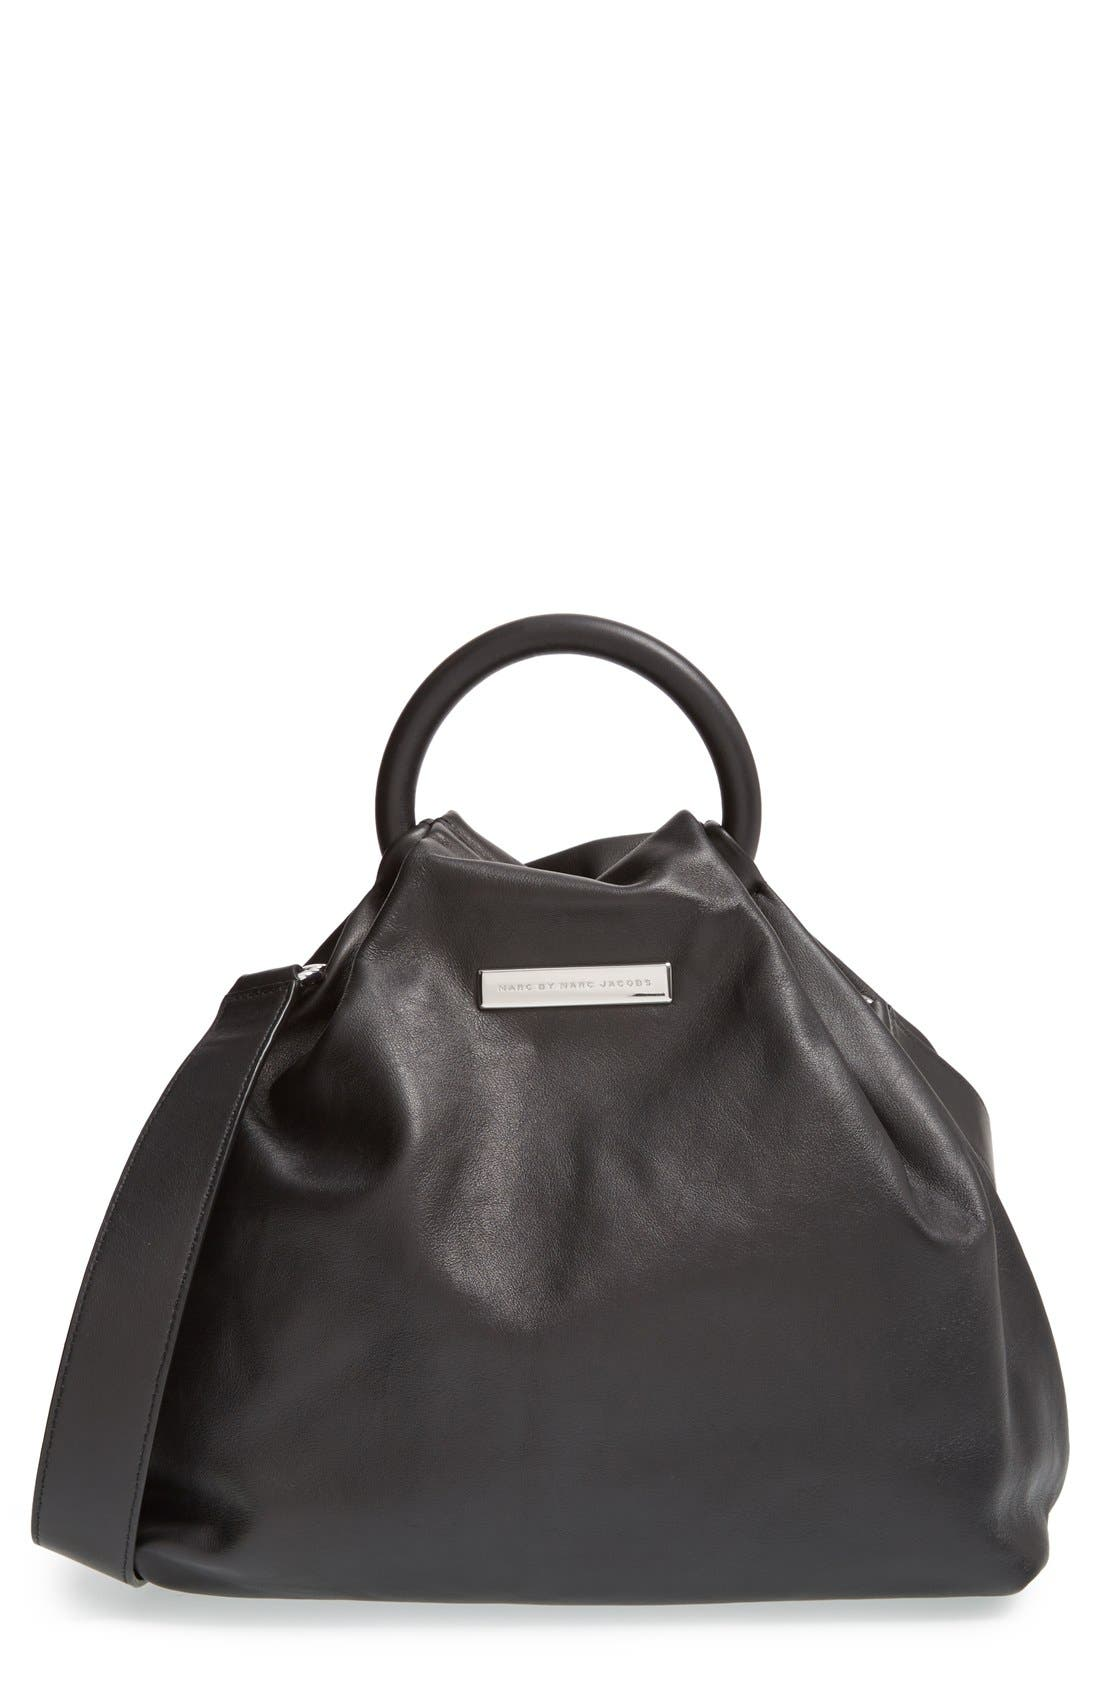 Main Image - MARC BY MARC JACOBS 'Hanging Around' Leather Ring Tote